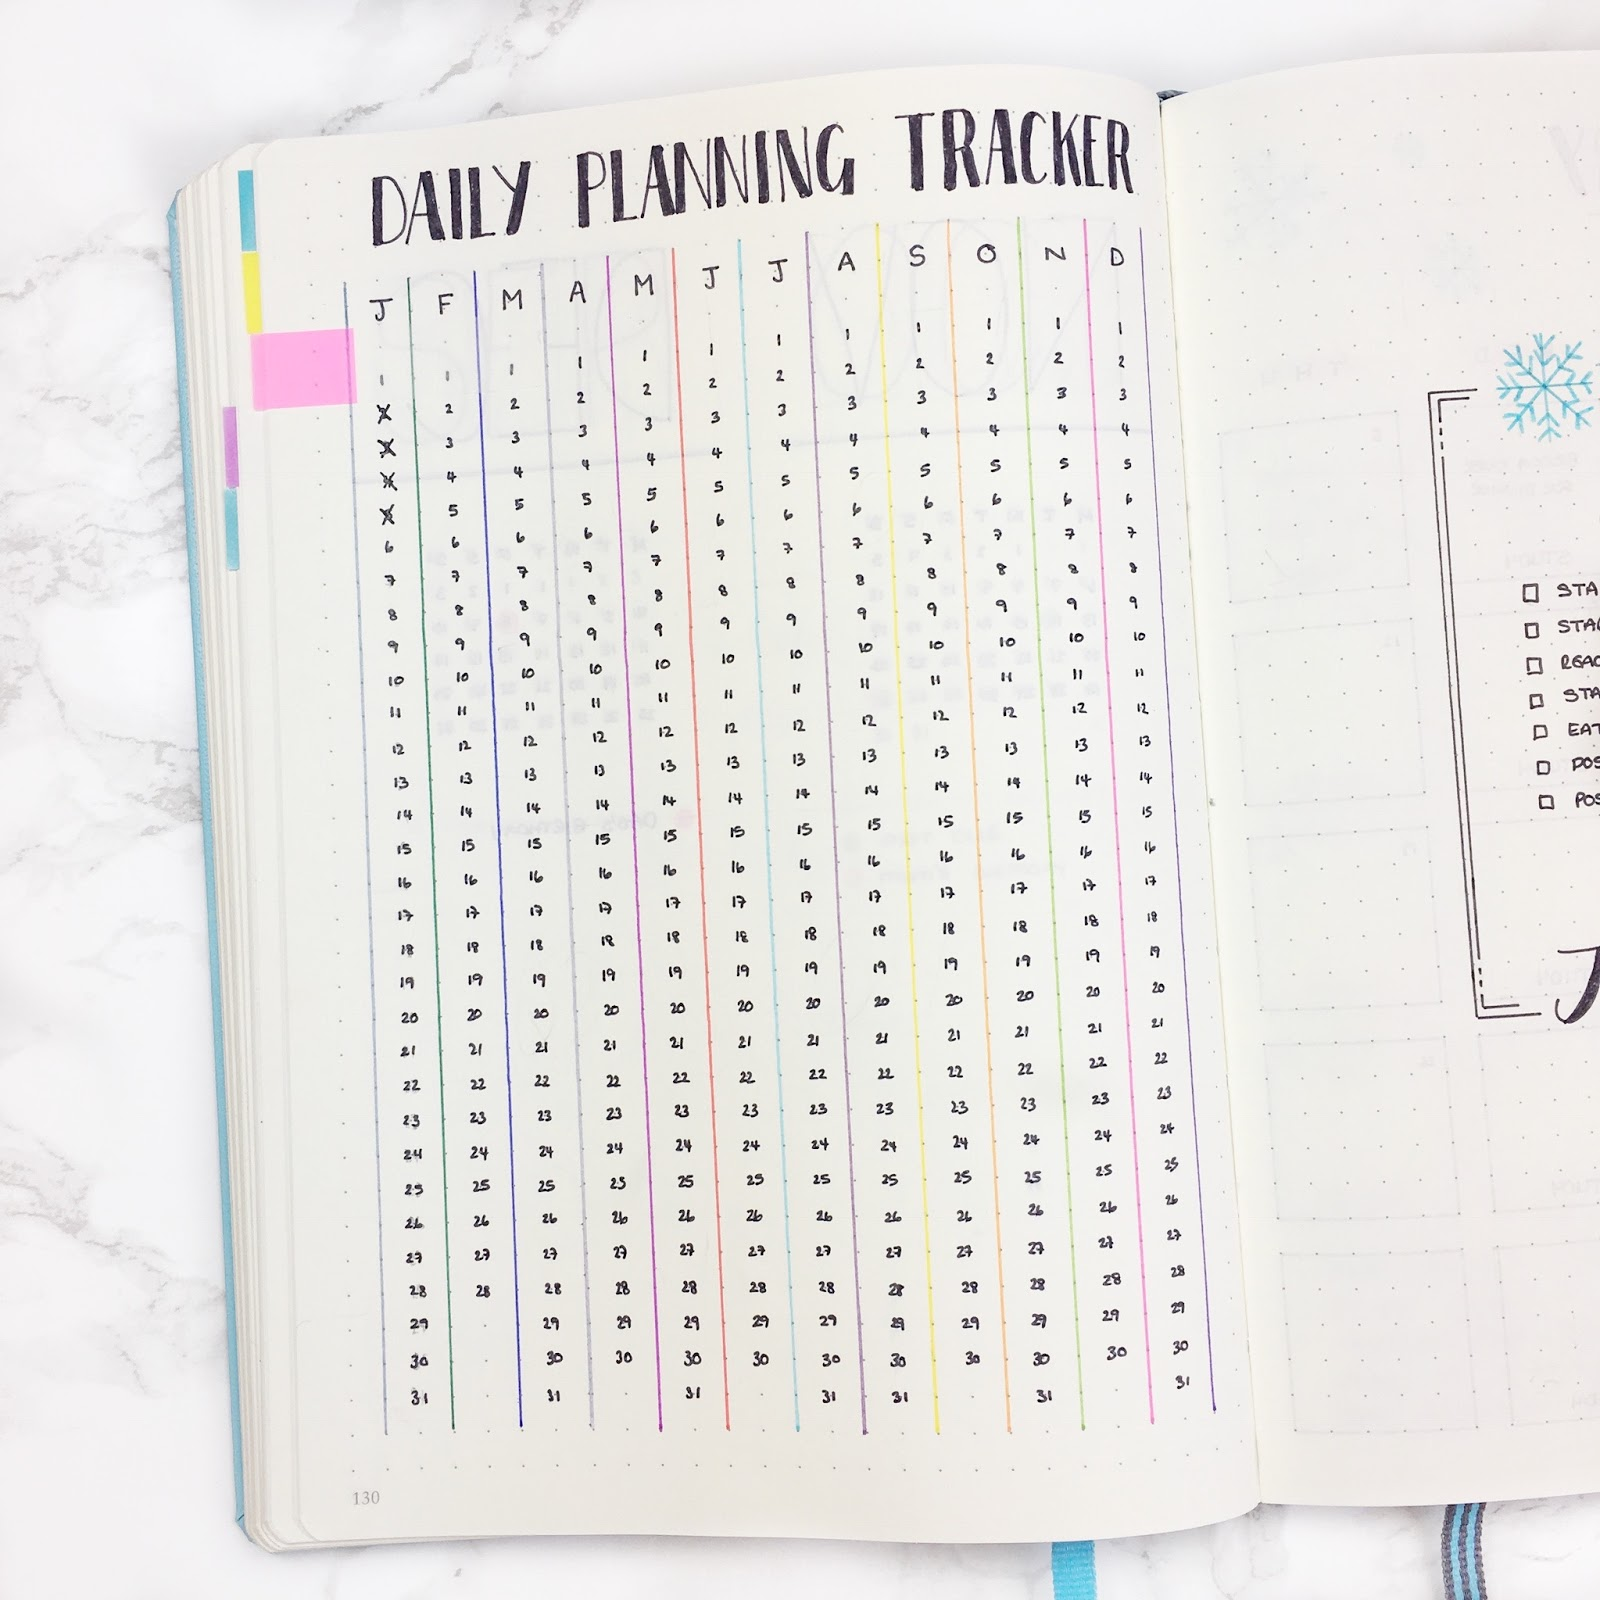 Bullet Journal Daily Planning Tracker Template